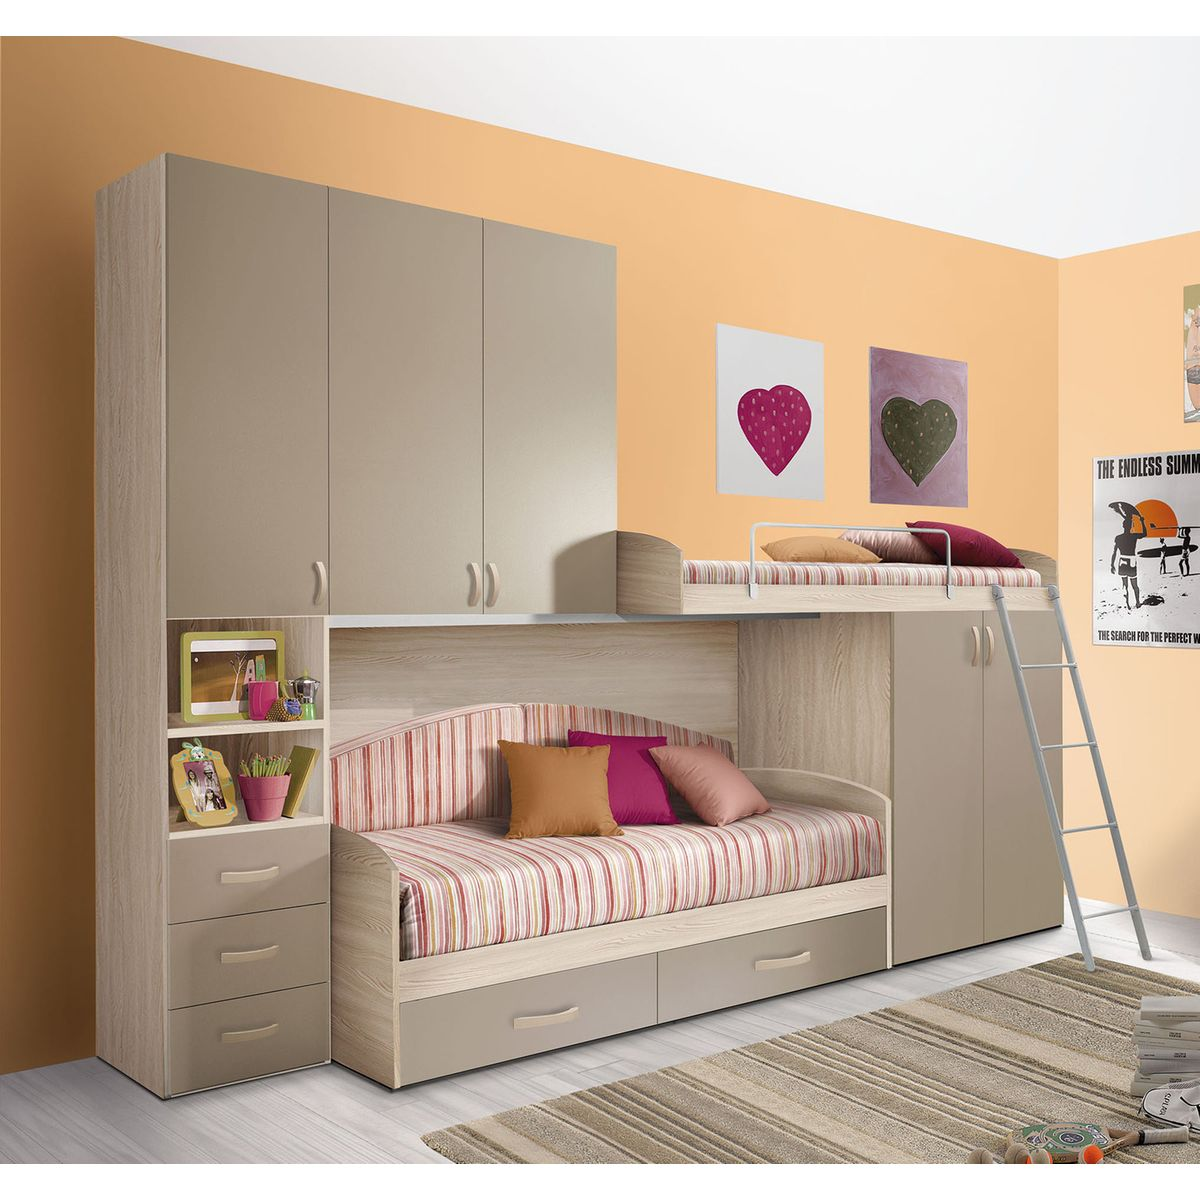 chambre d 39 enfant compl te hurra mennza chambre compl te. Black Bedroom Furniture Sets. Home Design Ideas